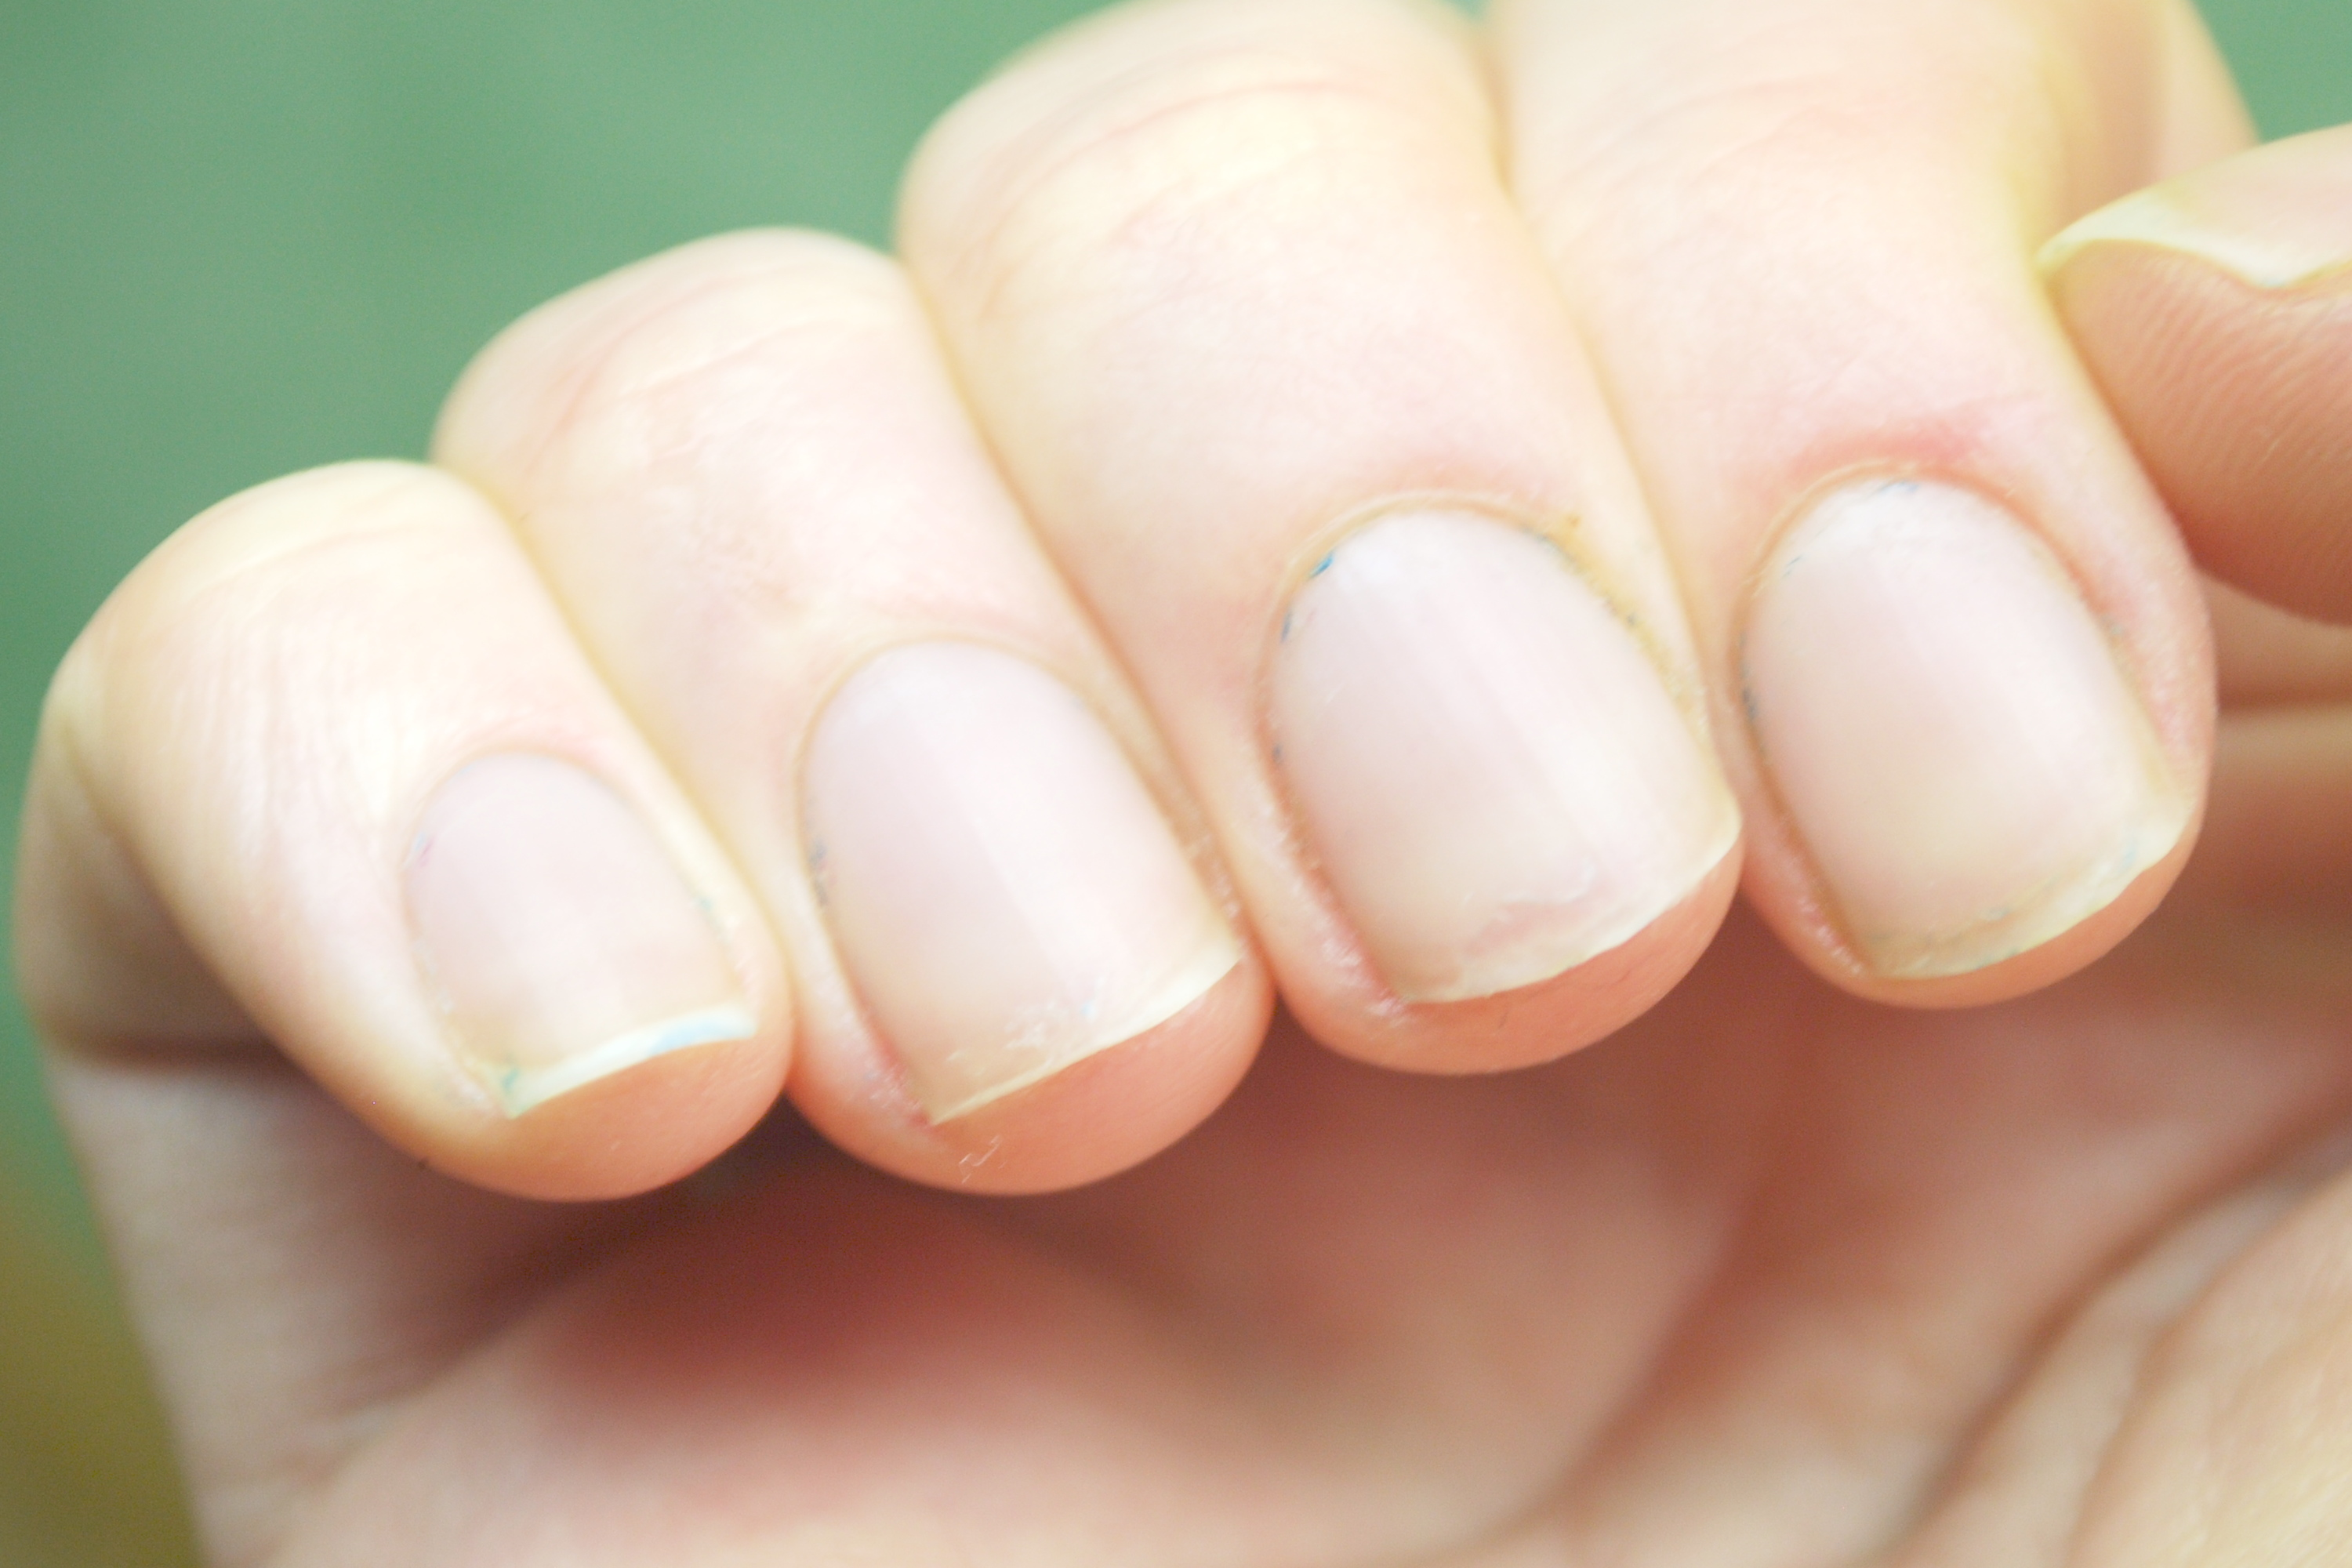 Use of Olive Oil for Nail Growth & Care | LIVESTRONG.COM